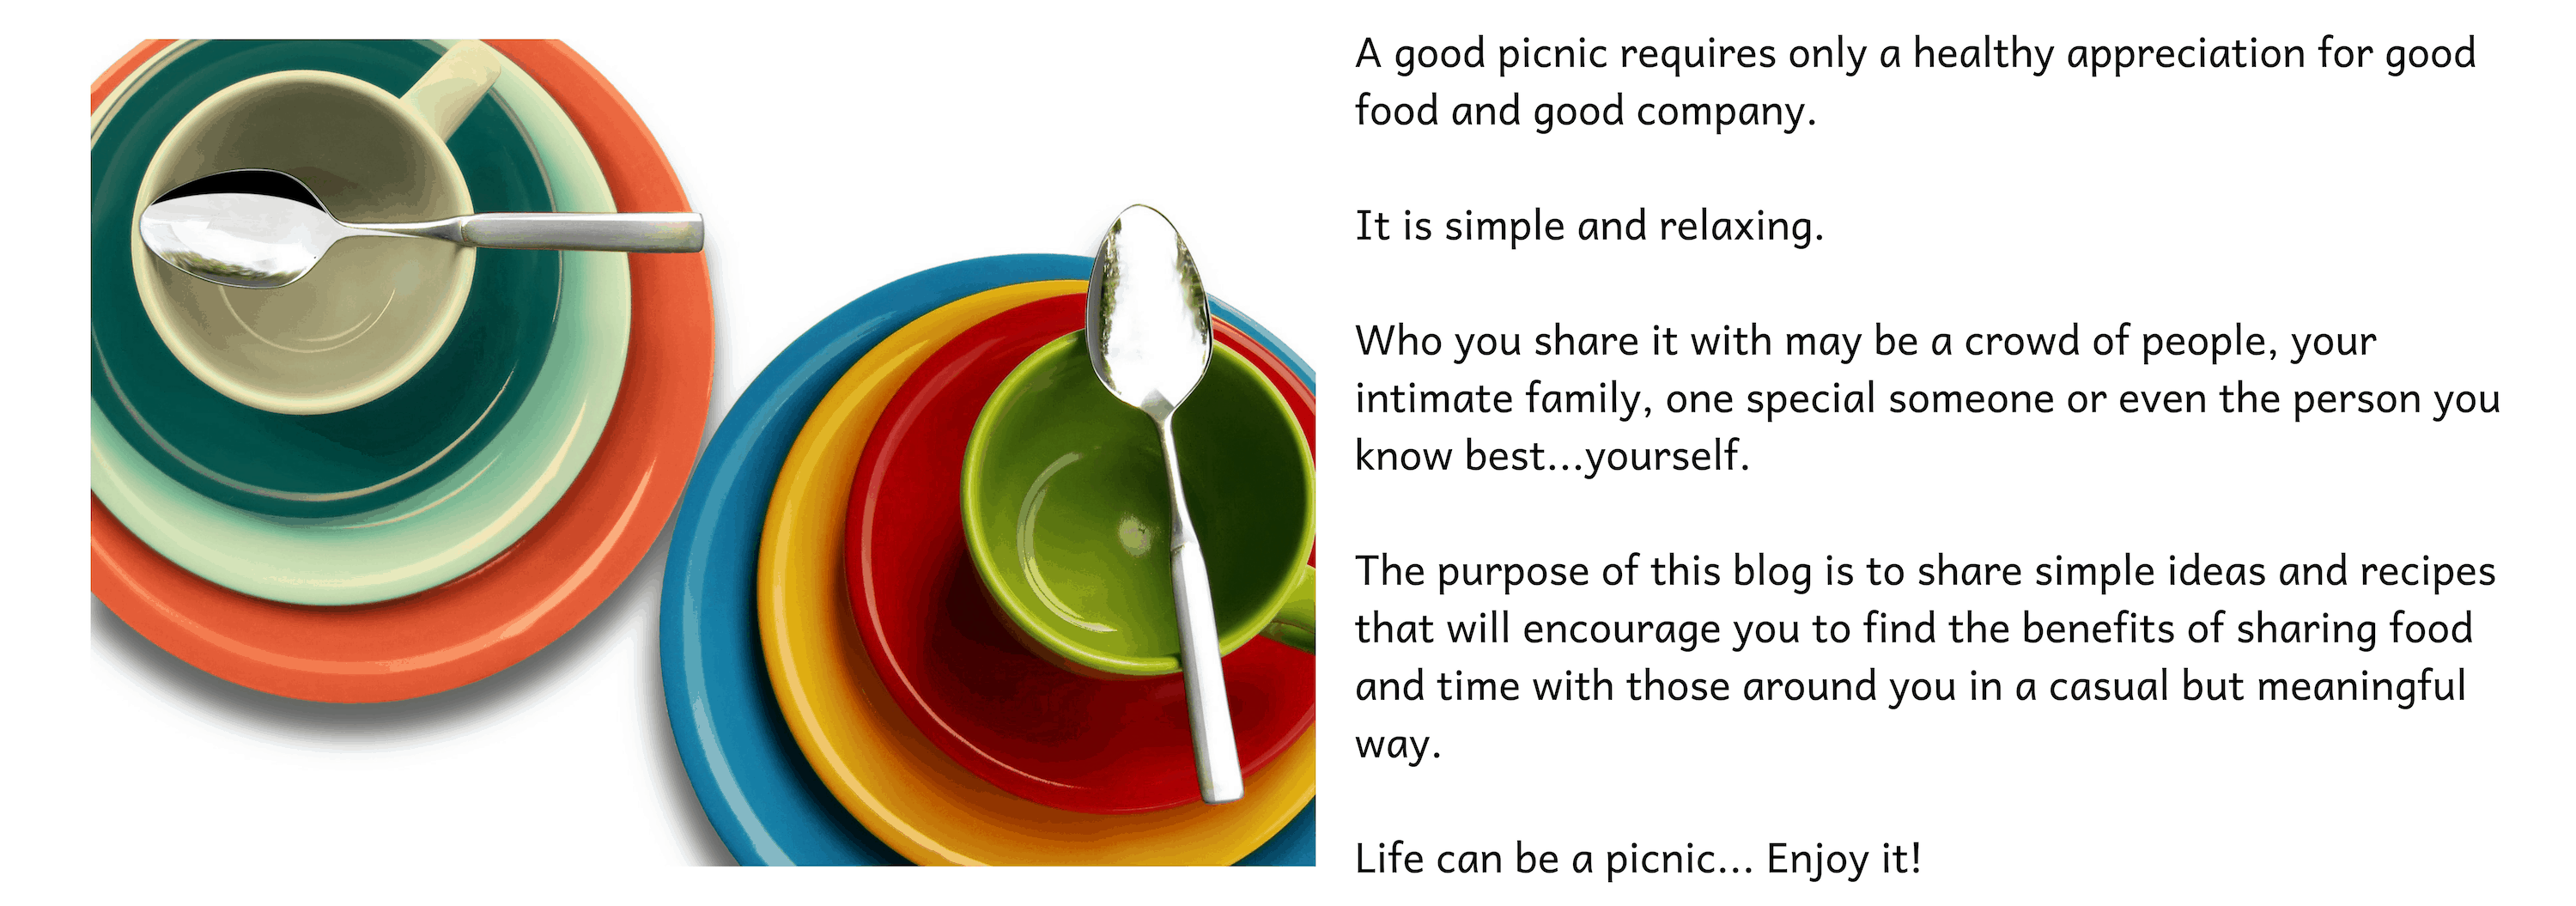 Picnic Life Foodie Welcome